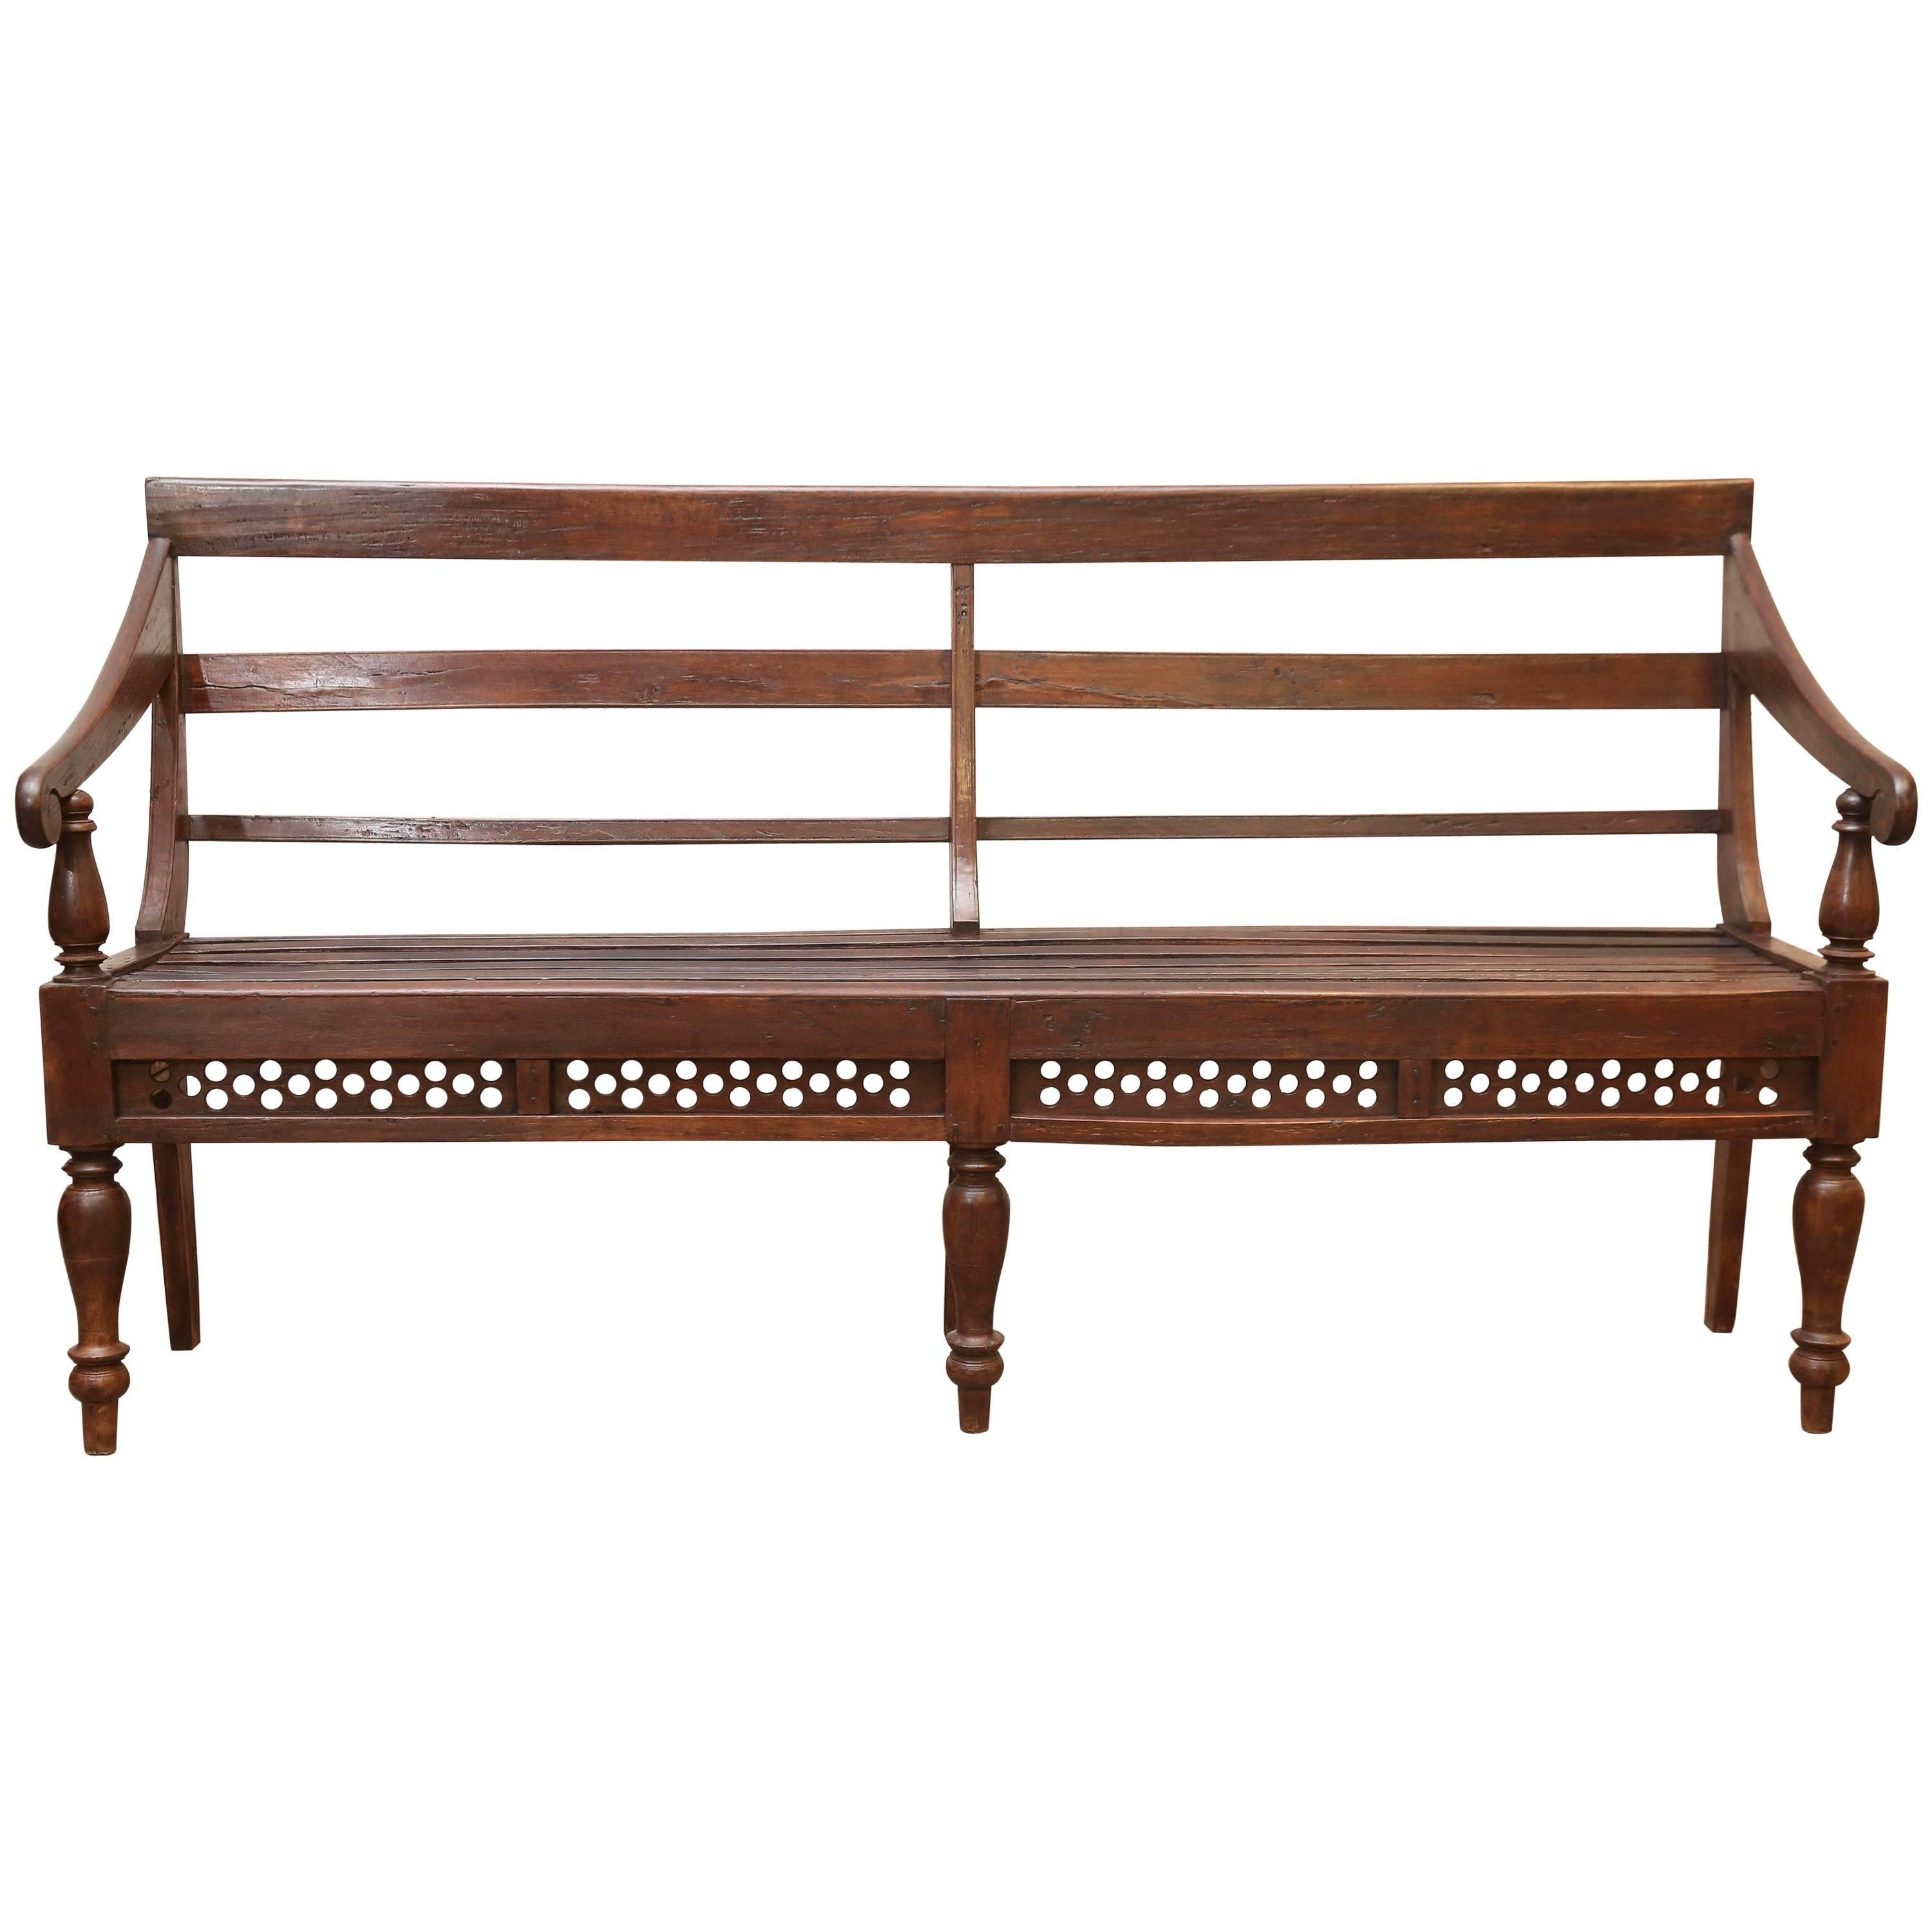 1910s Solid Teakwood British Colonial Office Bench From A Rail Road Office  For Sale